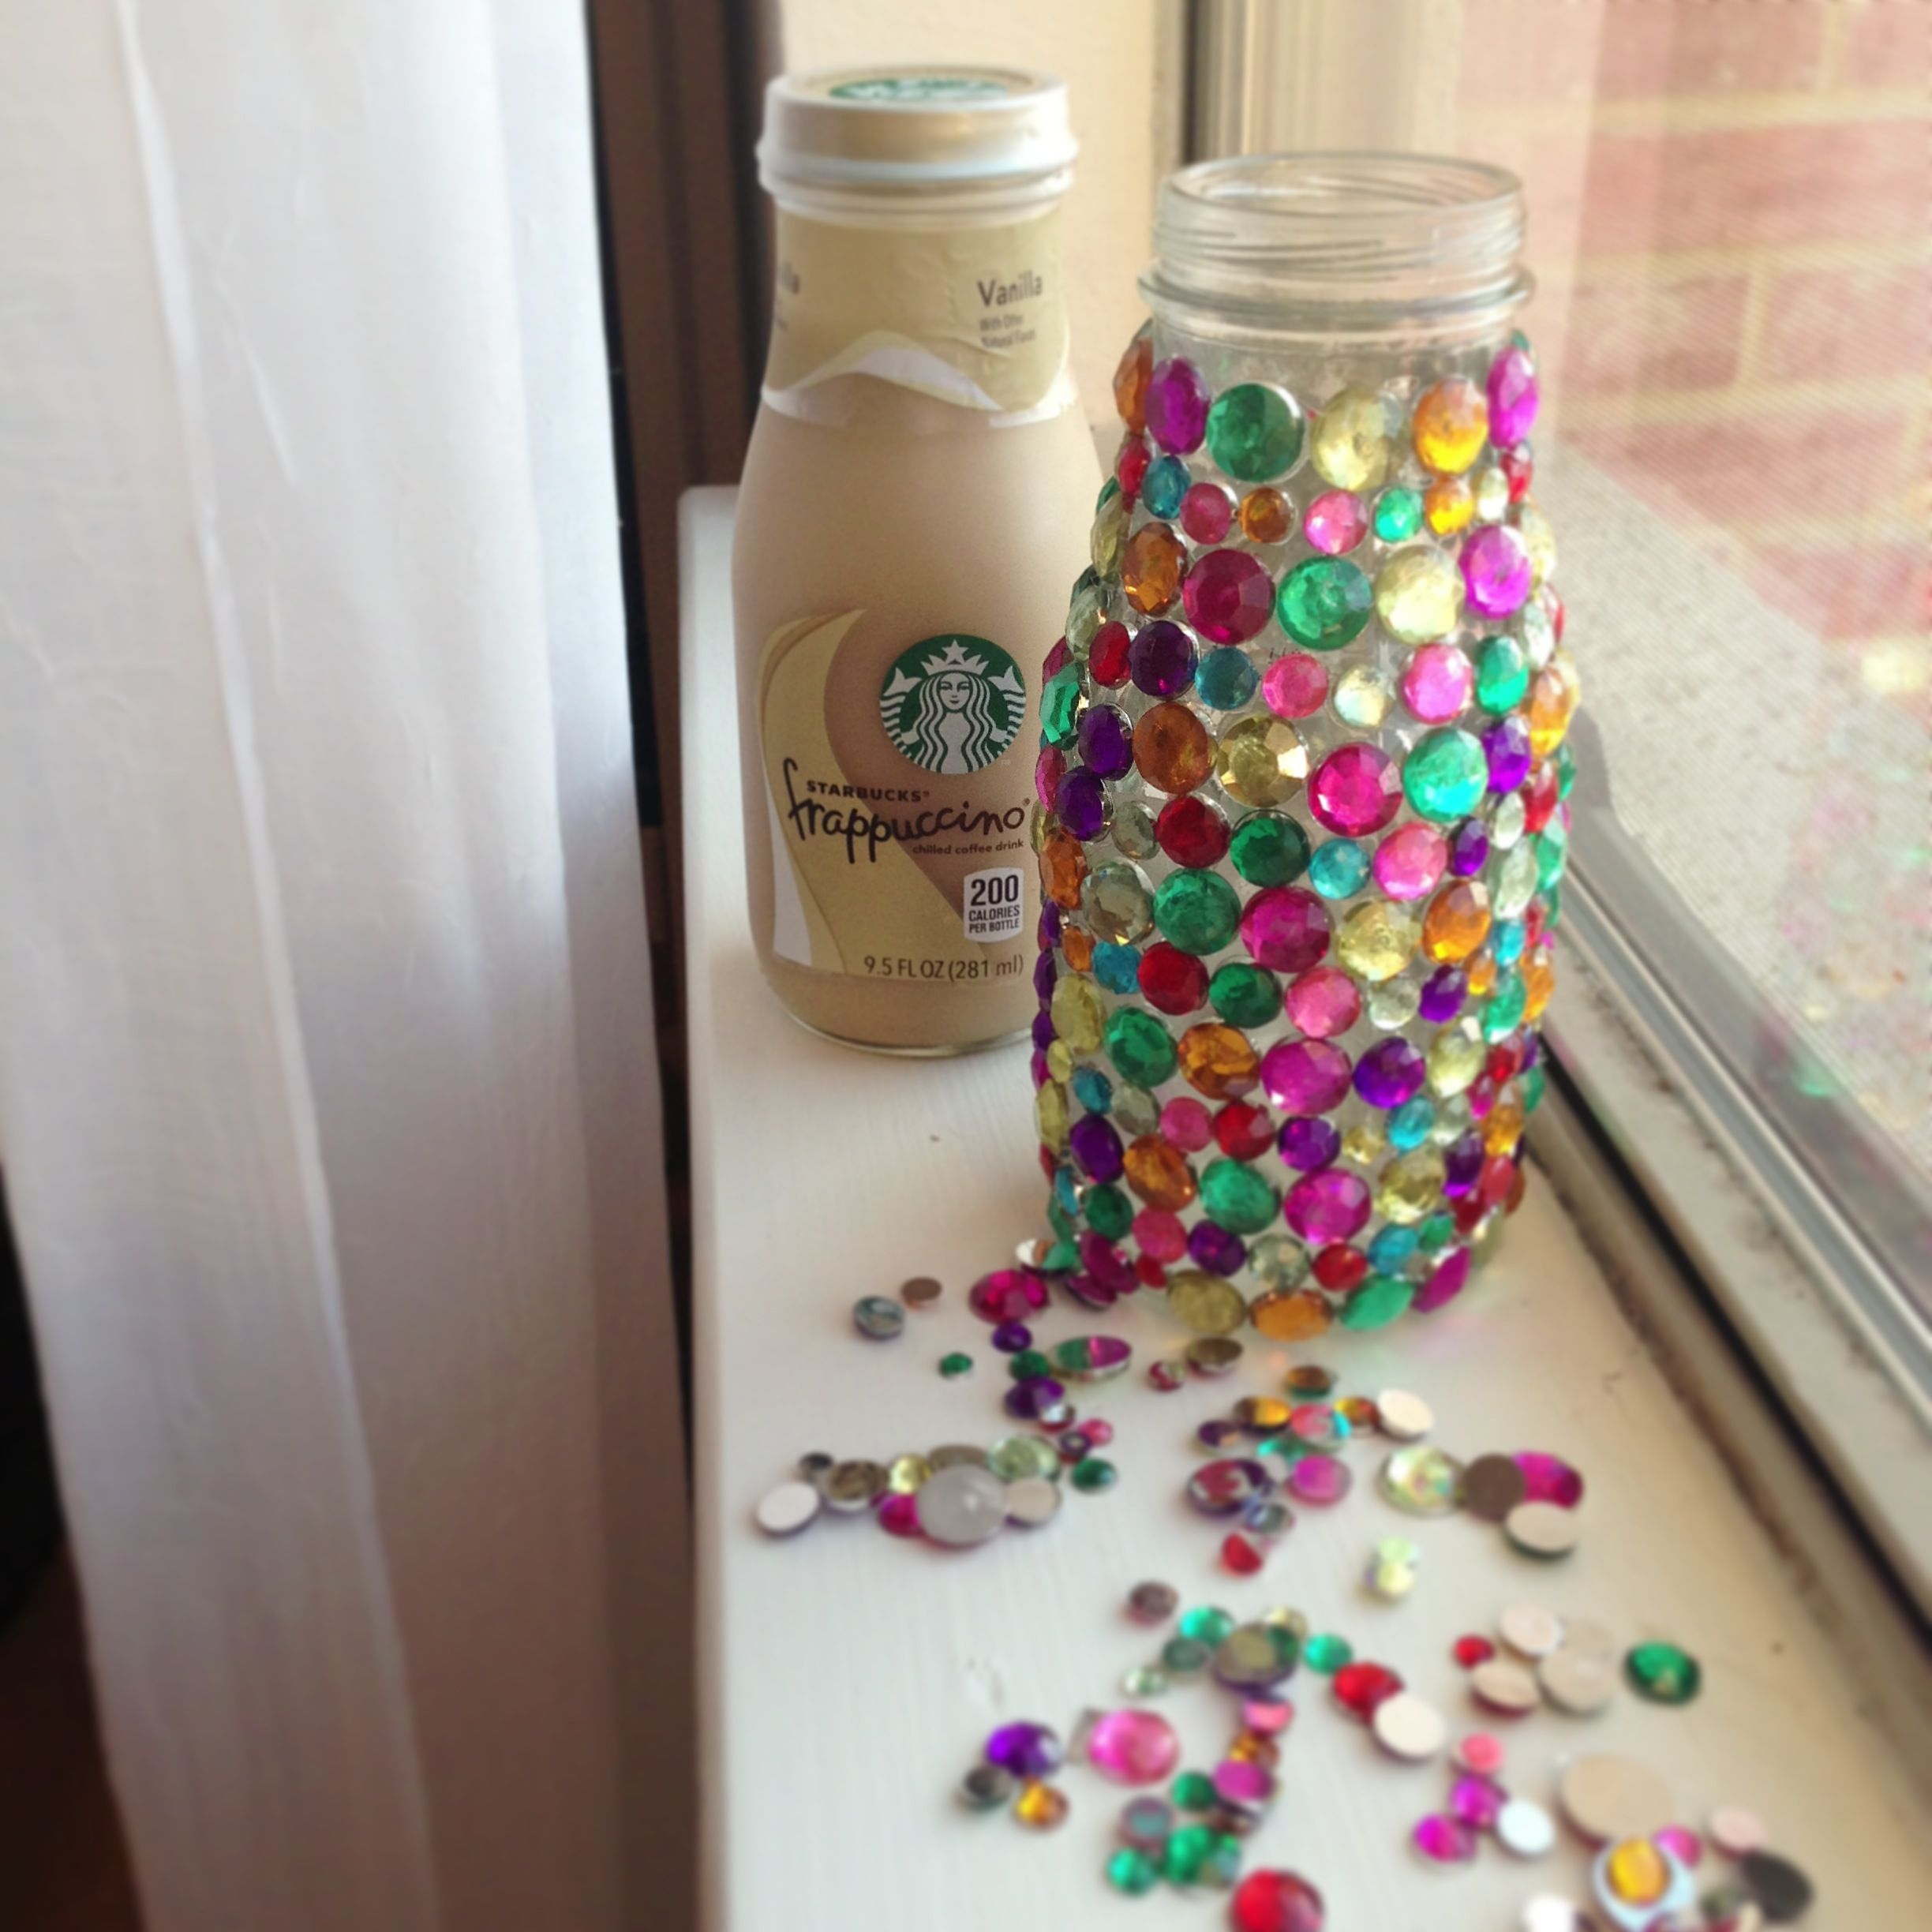 How To Decorate Glass Jars I Added Beads With My Hot Glue Gun To My Starbucks Frappuccino